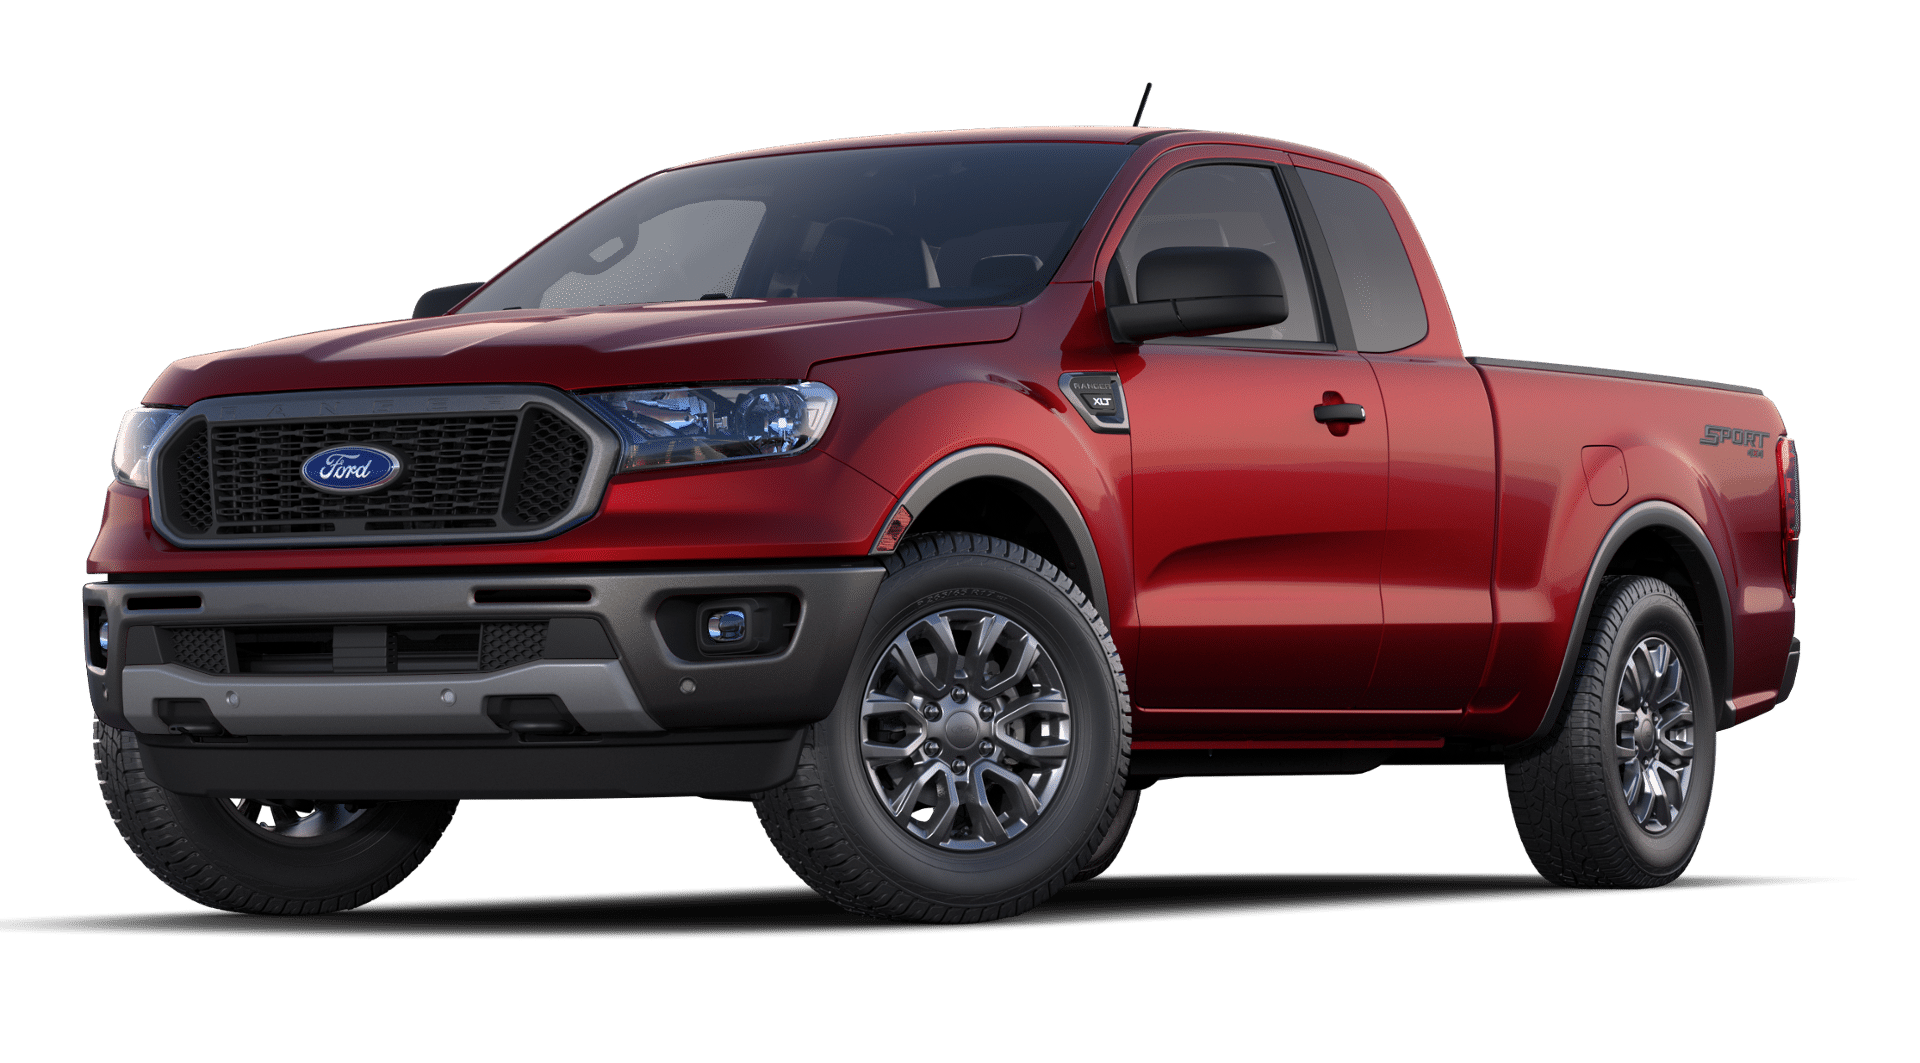 2020 Ford Ranger Build Price Ford Ranger 2020 Ford Ranger Ford Ranger Modified